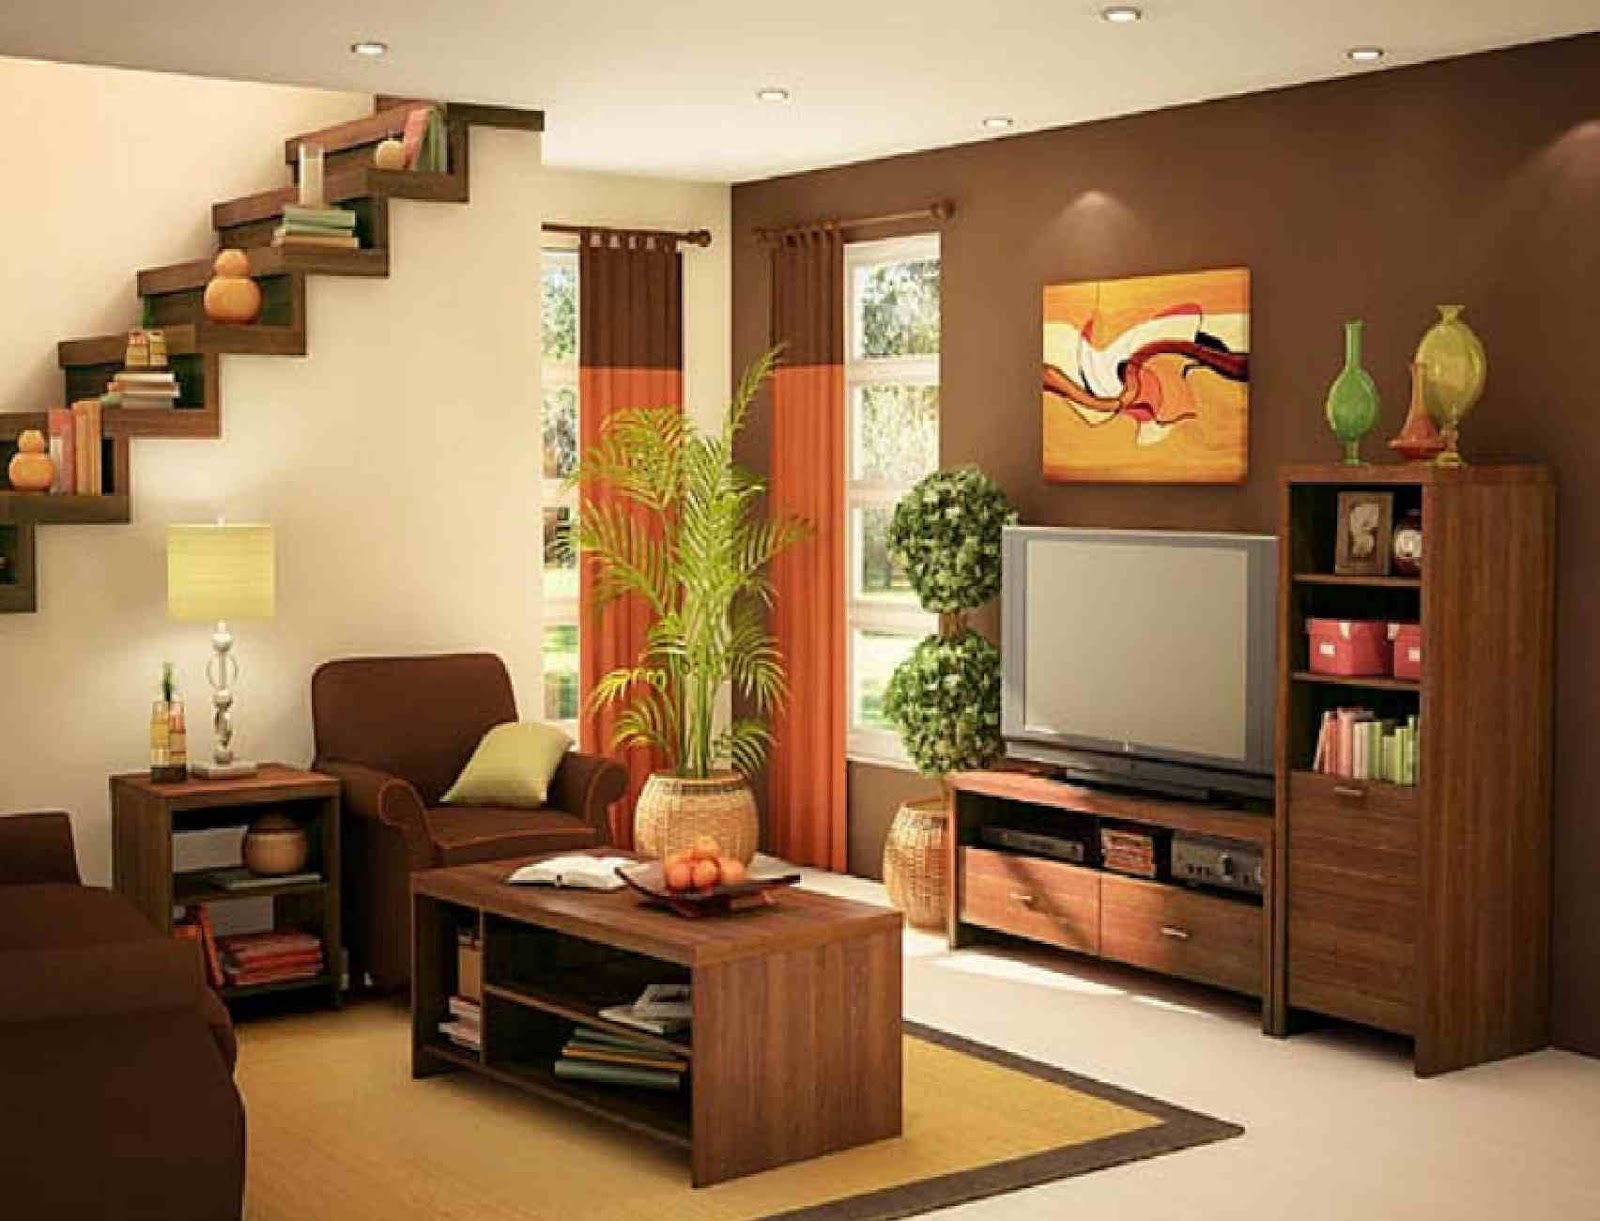 Simple living room designs dream house experience for Simple living homes